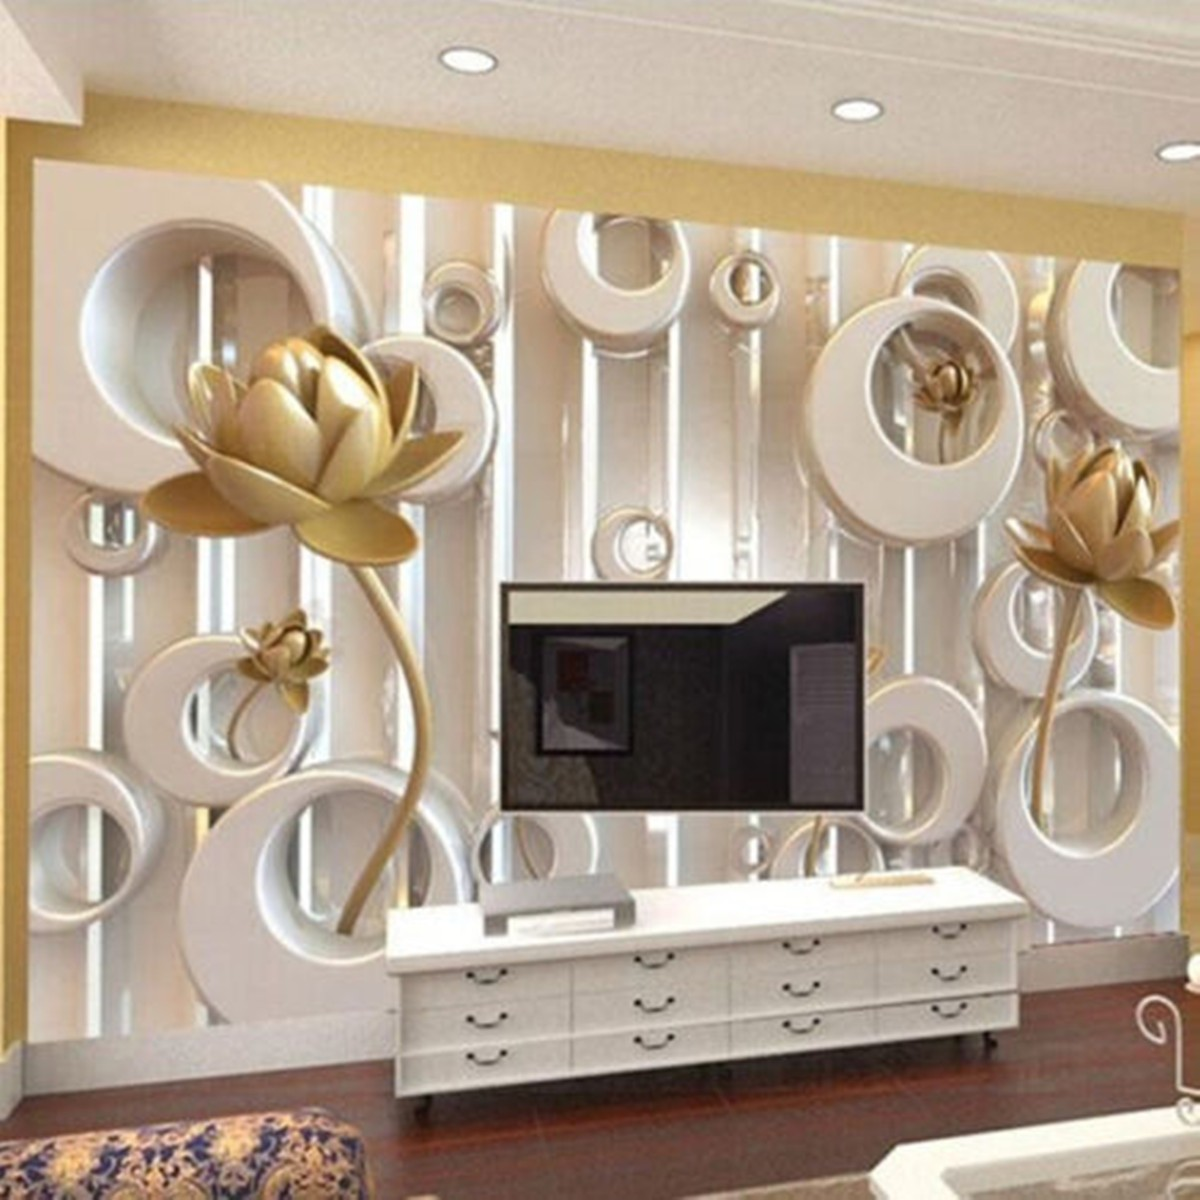 3d effect modern wallpaper bedroom mural painting luxury embossing 3d effect modern wallpaper bedroom mural painting luxury embossing gold rose soundproof wall stickers home decor embellishment in wall stickers from home amipublicfo Gallery